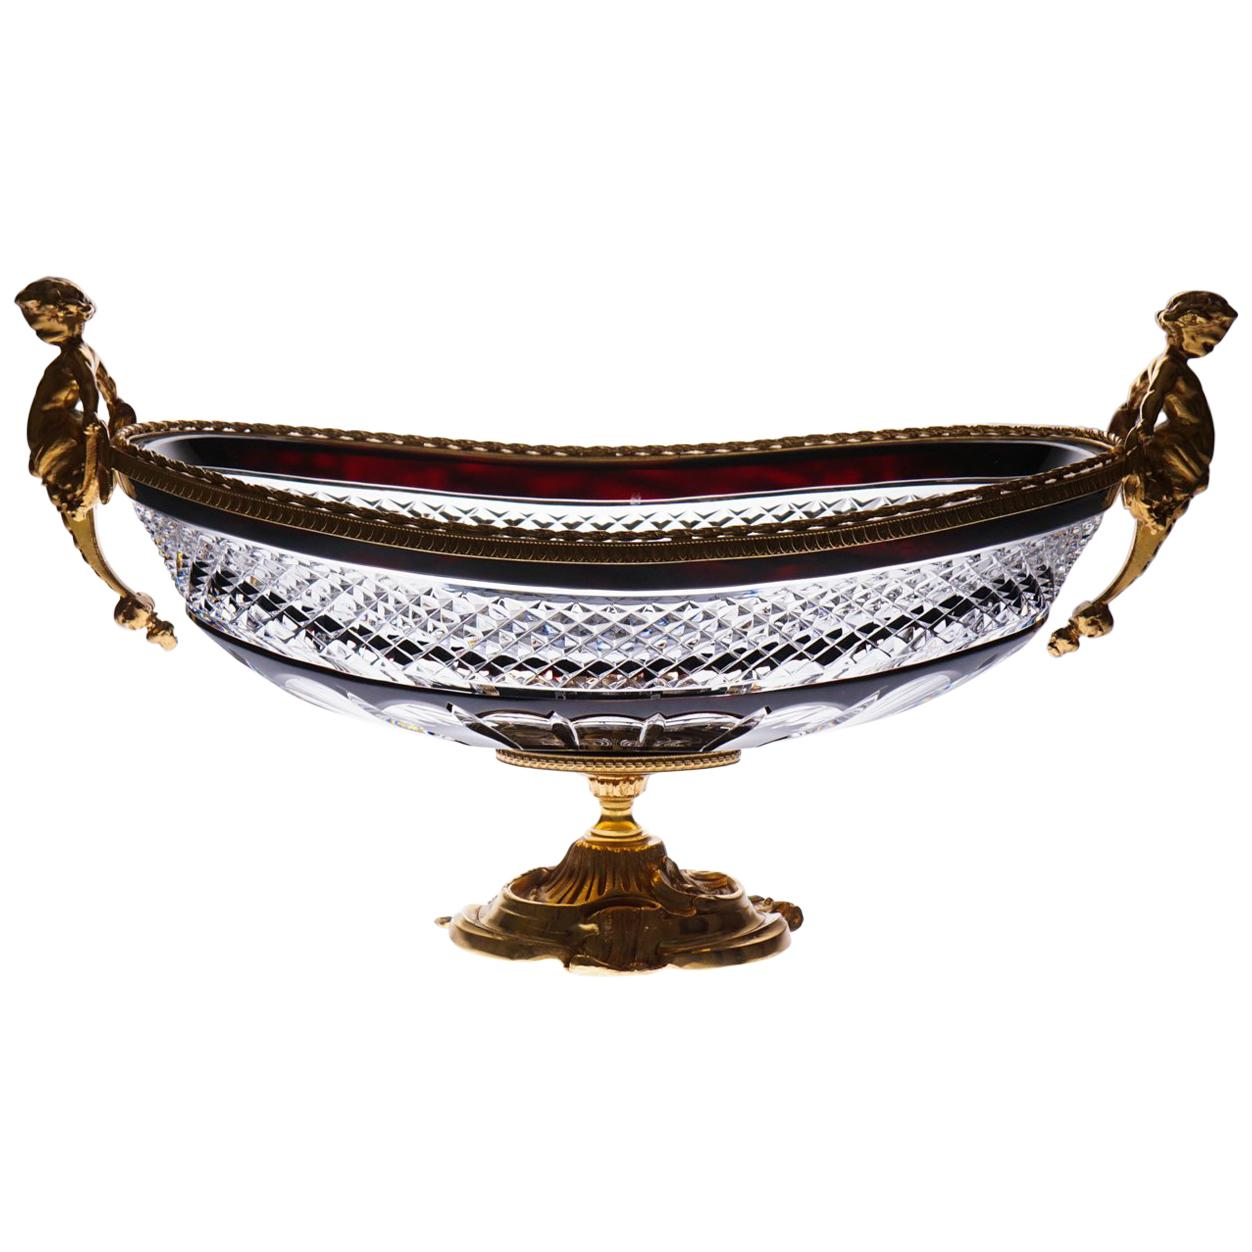 Dark Red Rrystal Jardinière with Bronze Covered 22-Carat Gold, Angel Detail